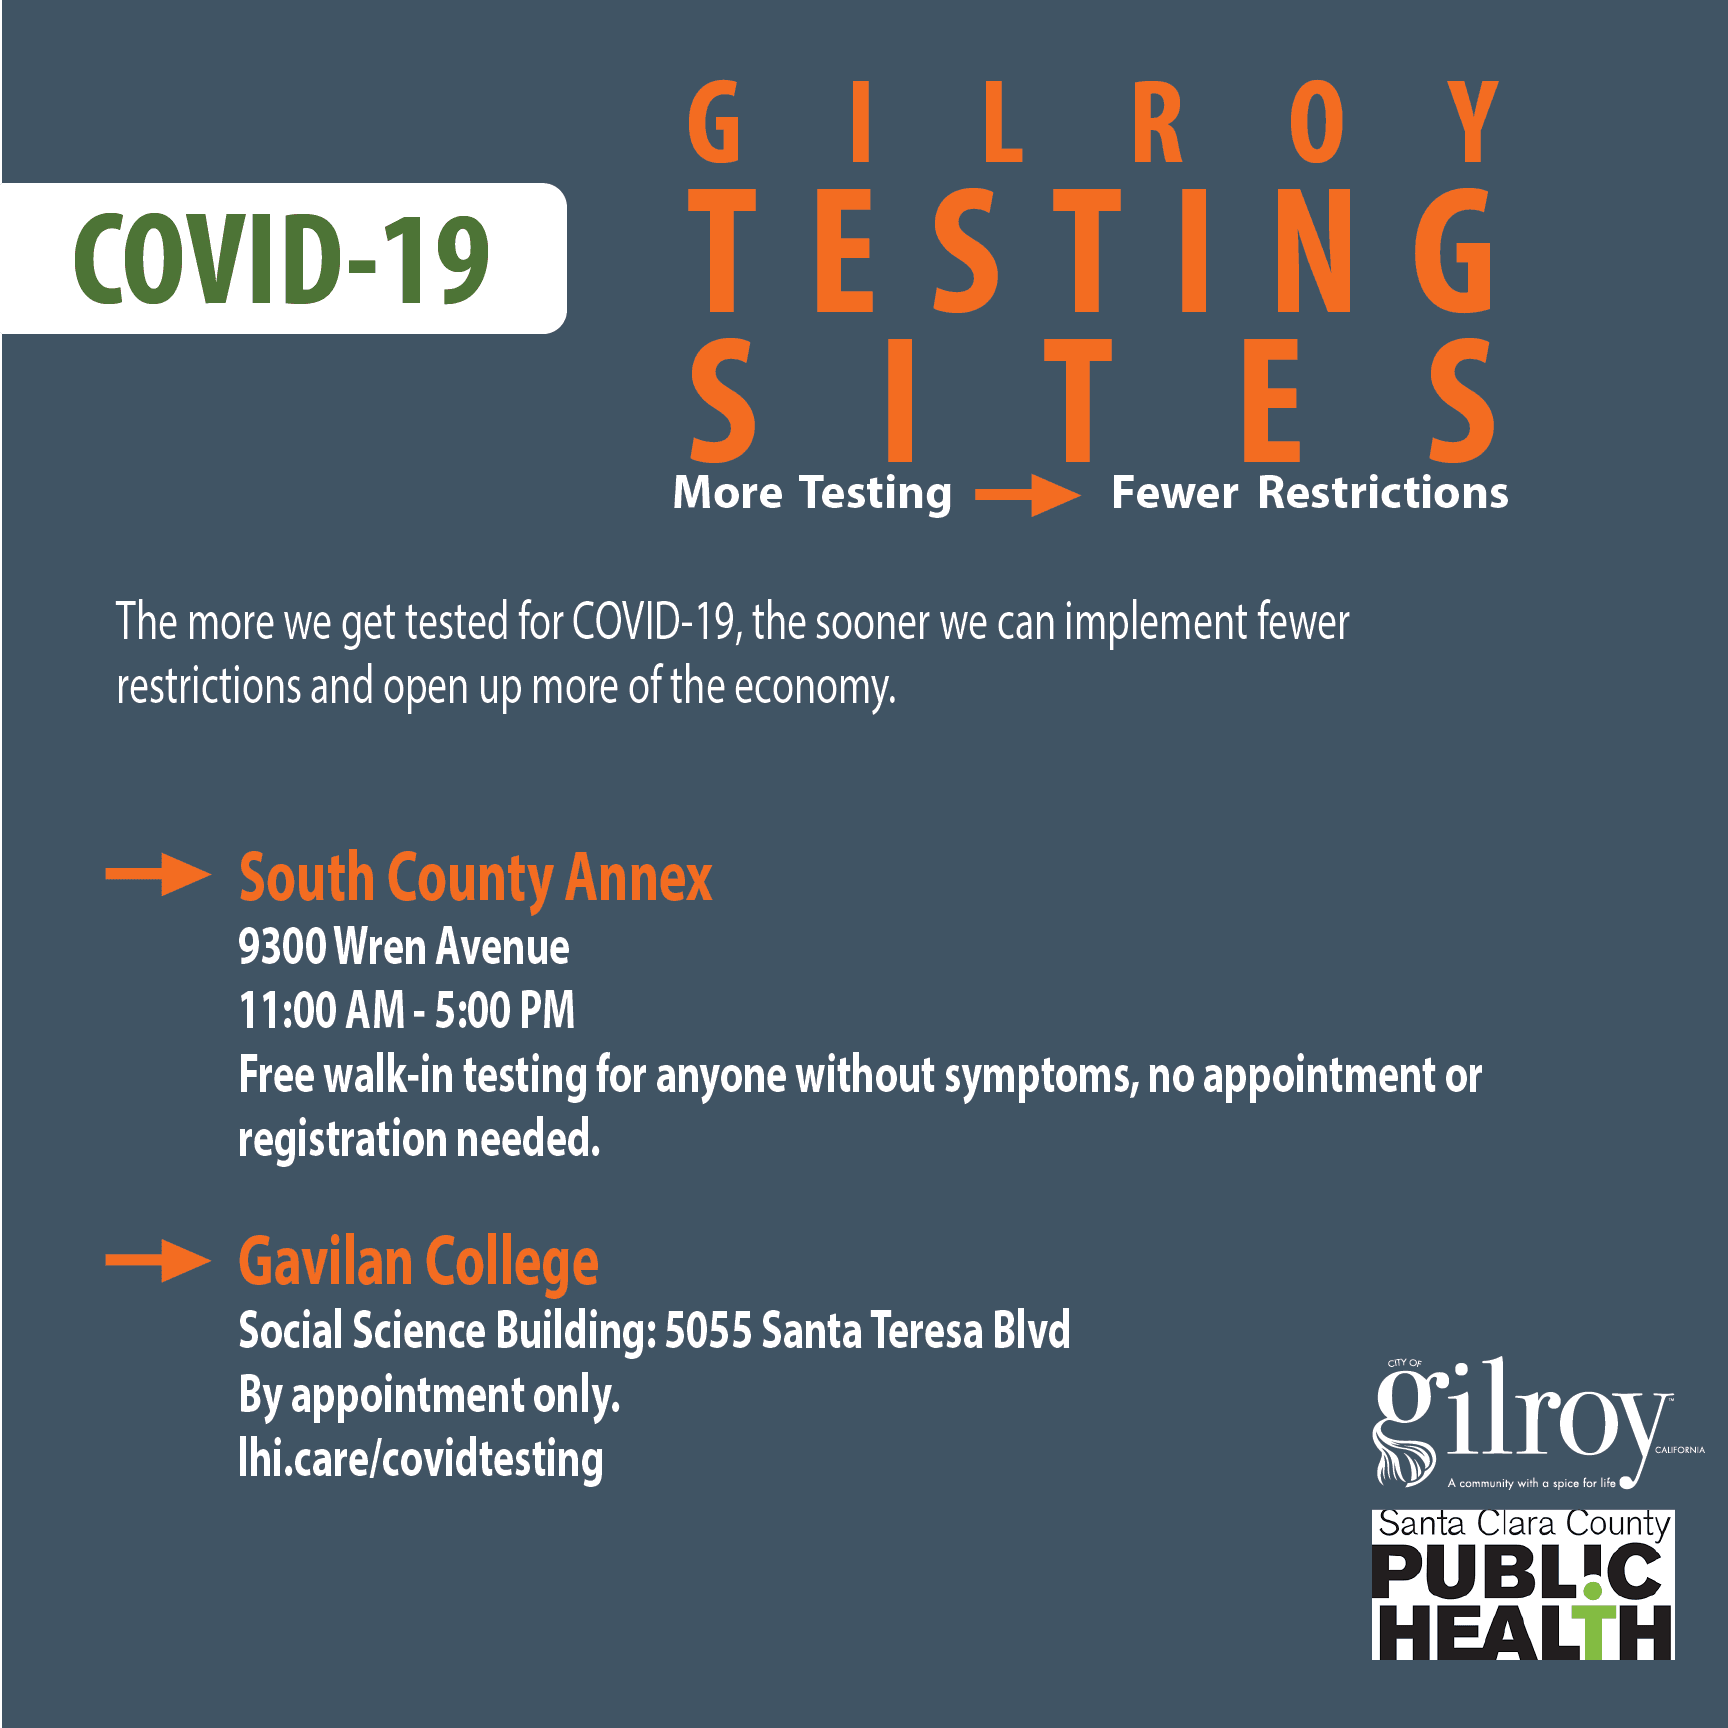 Gilroy Testing Sites are Located at the South County Annex and Gavilan College